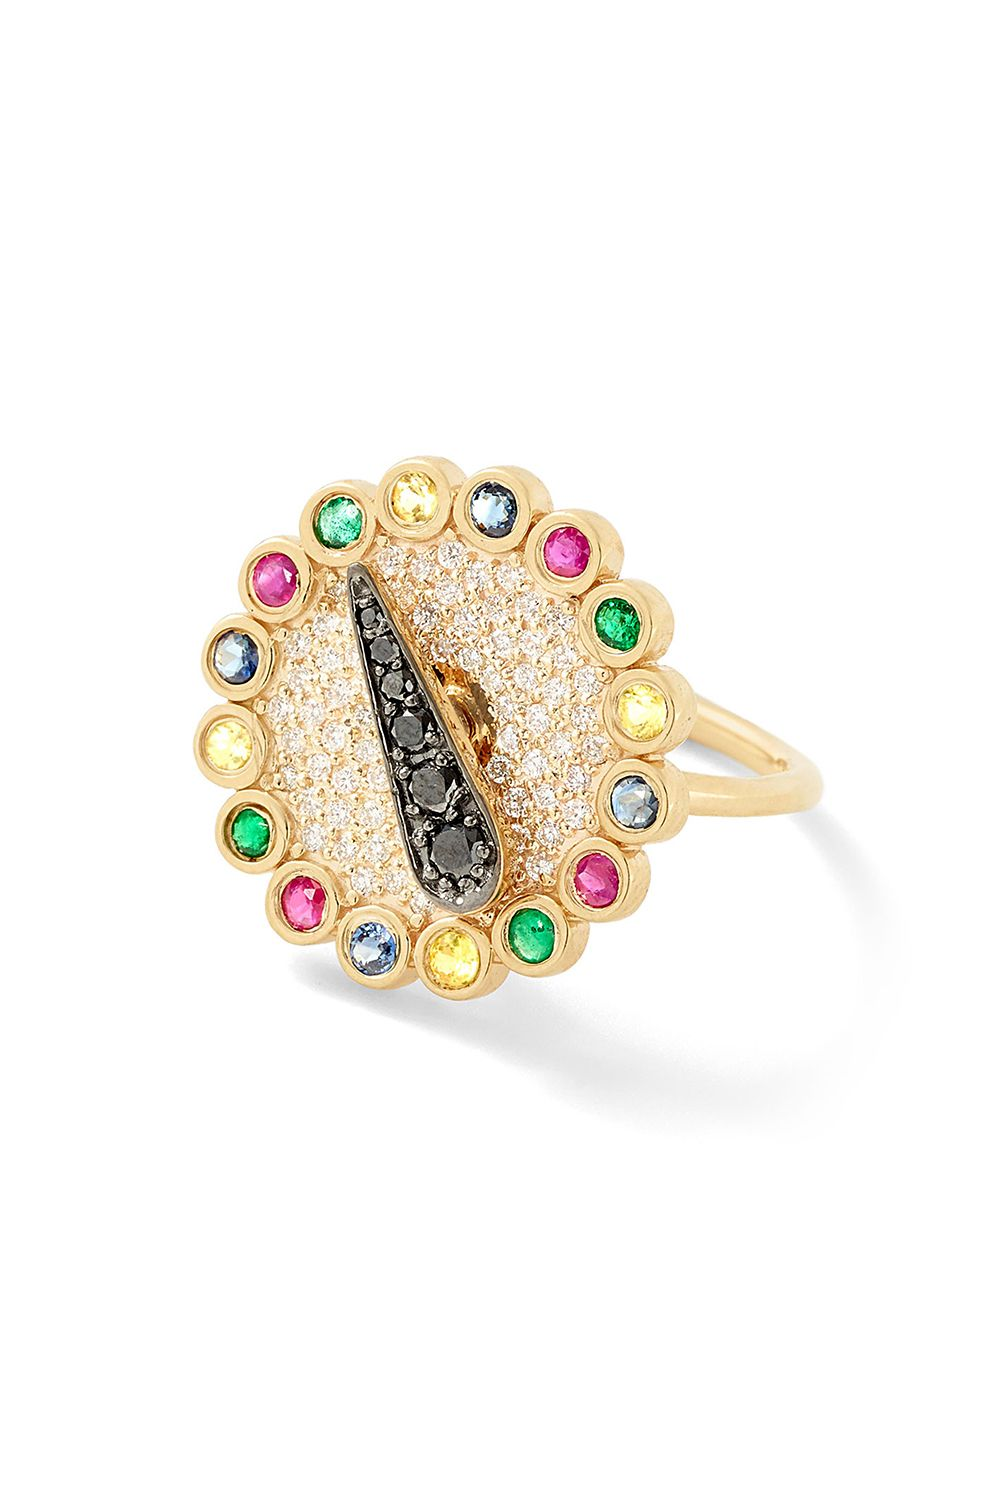 "<p>A LITERAL SPINNER. But with the precious stones, it'll last way longer than the current fad. </p><p>Alison Lou, $7,460; <a href=""https://www.alisonlou.com/collections/ring/products/blinged-out-spinner-ring"" target=""_blank"" data-tracking-id=""recirc-text-link"">alisonlou.com</a>.</p>"